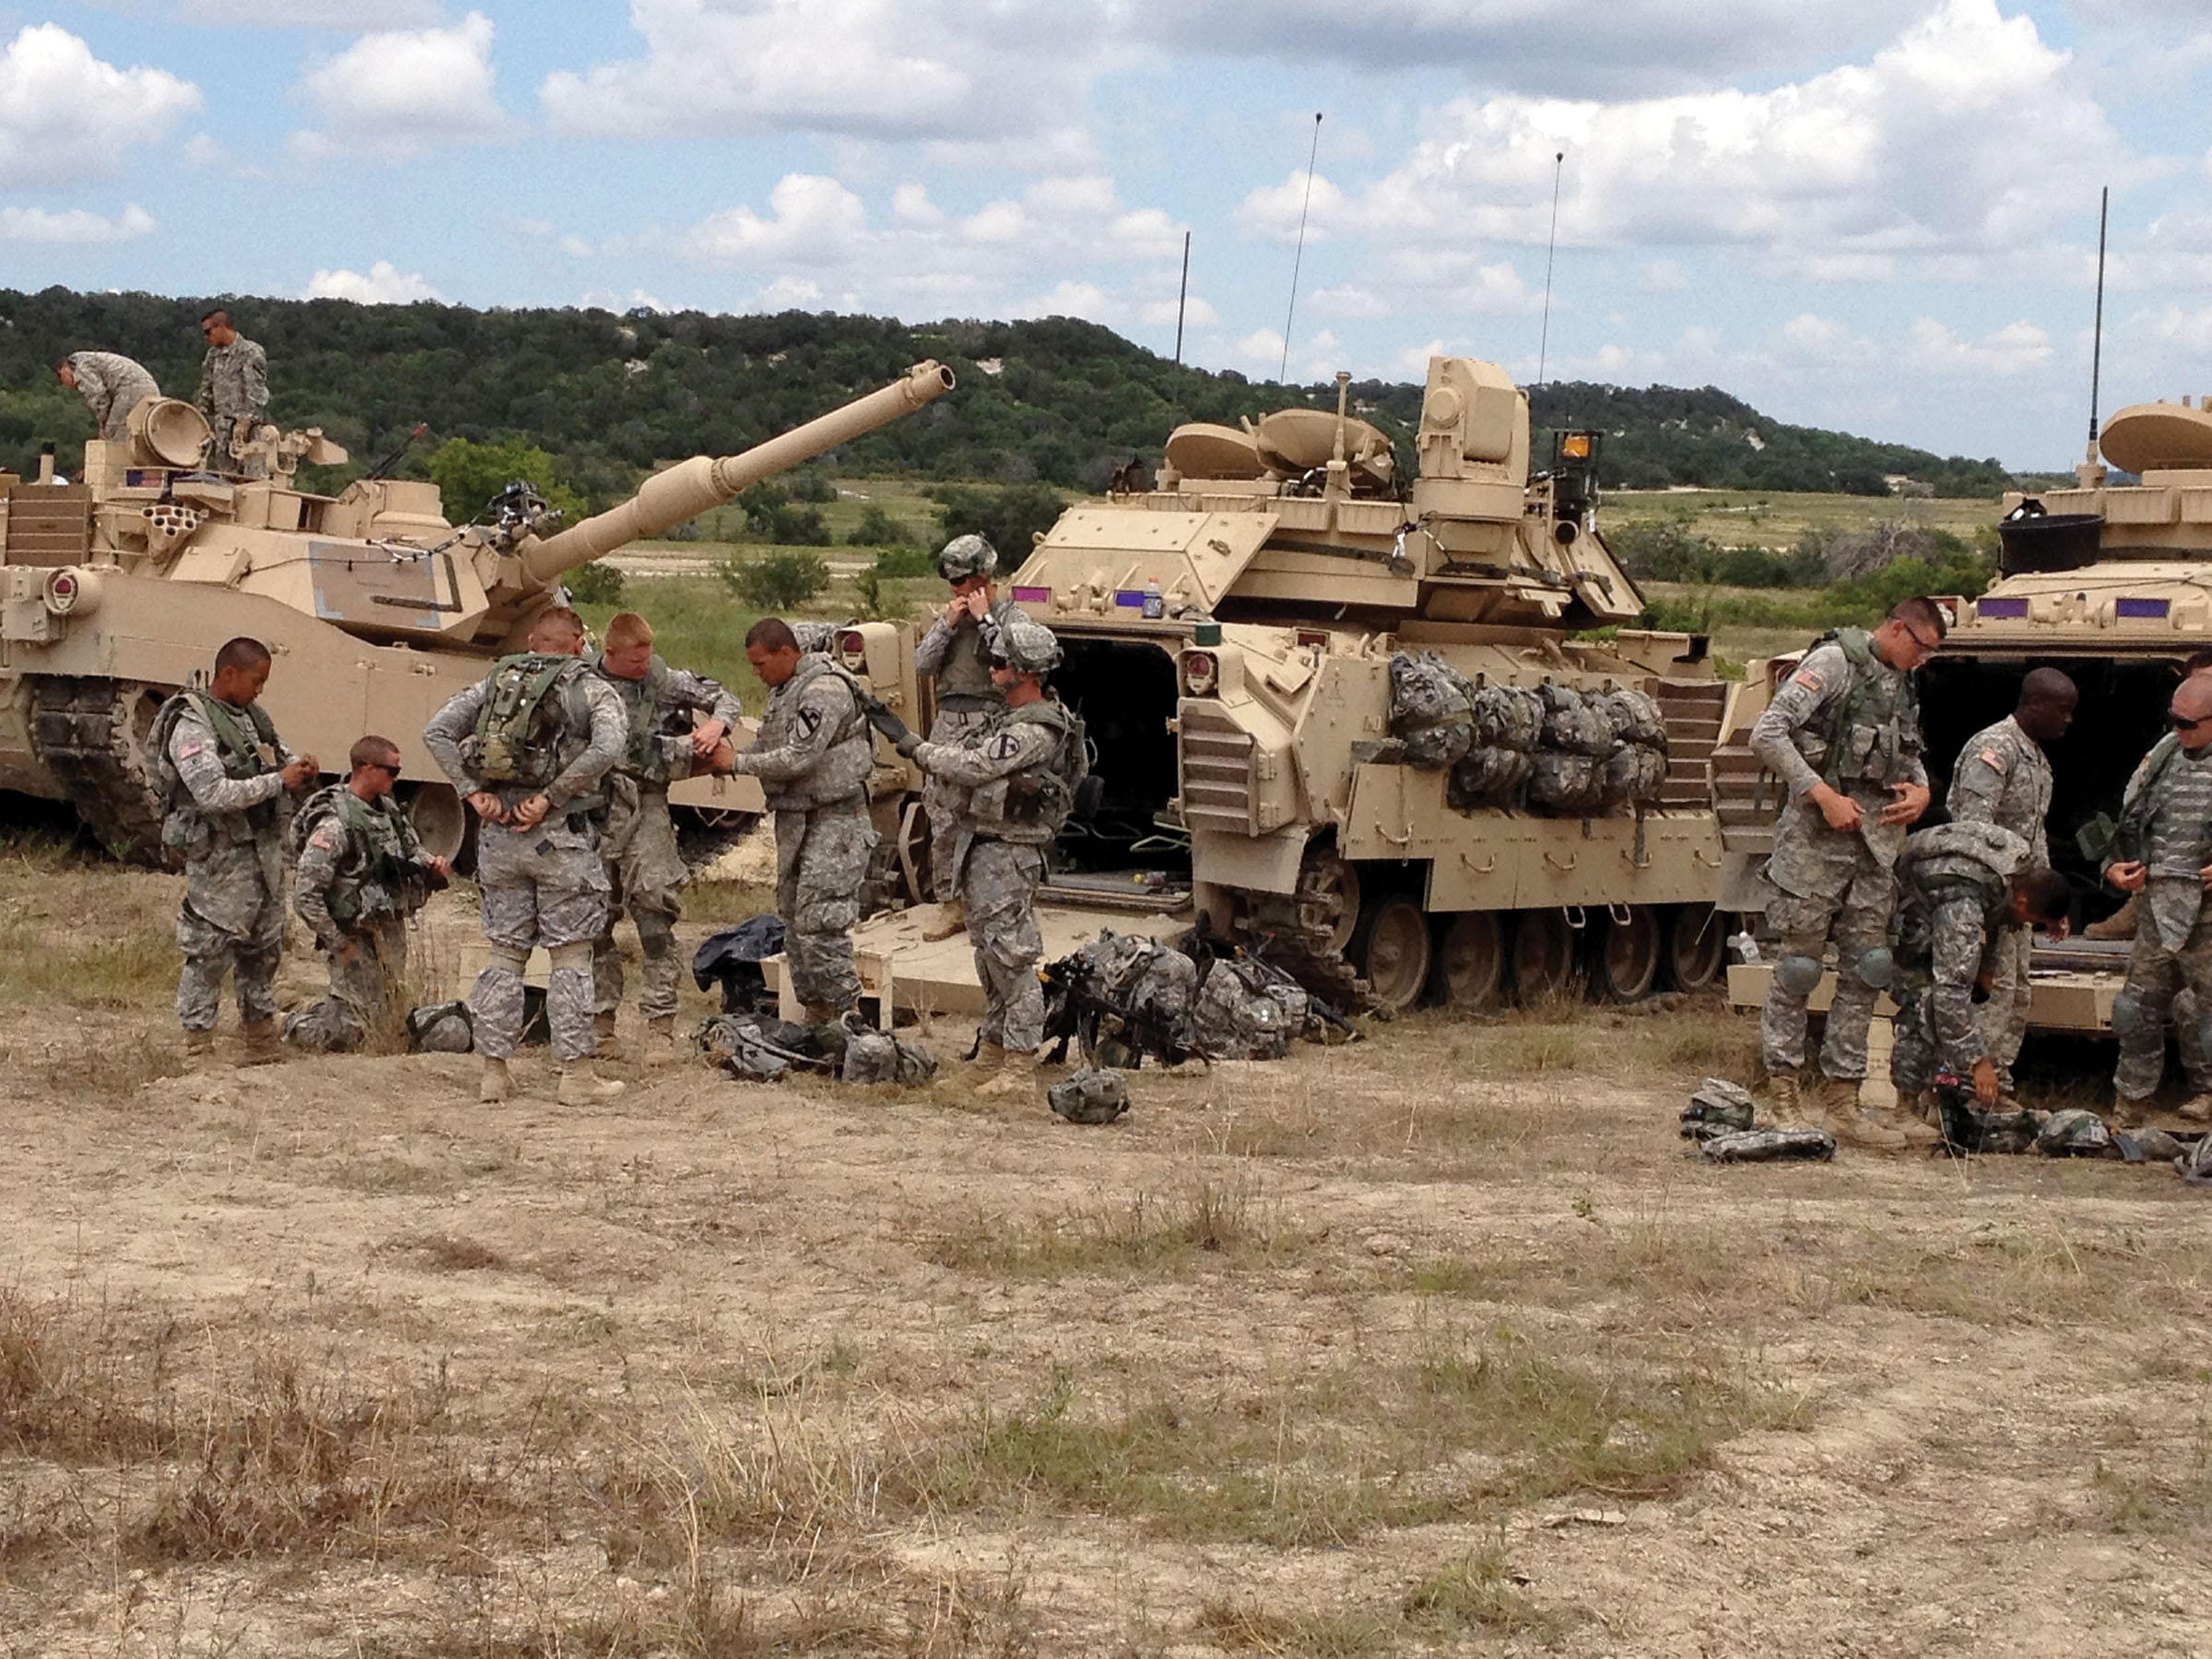 Soldiers at Fort Hood, TX, prepare to participate in the live portion of LVC-IA testing. (U.S. Army photo)